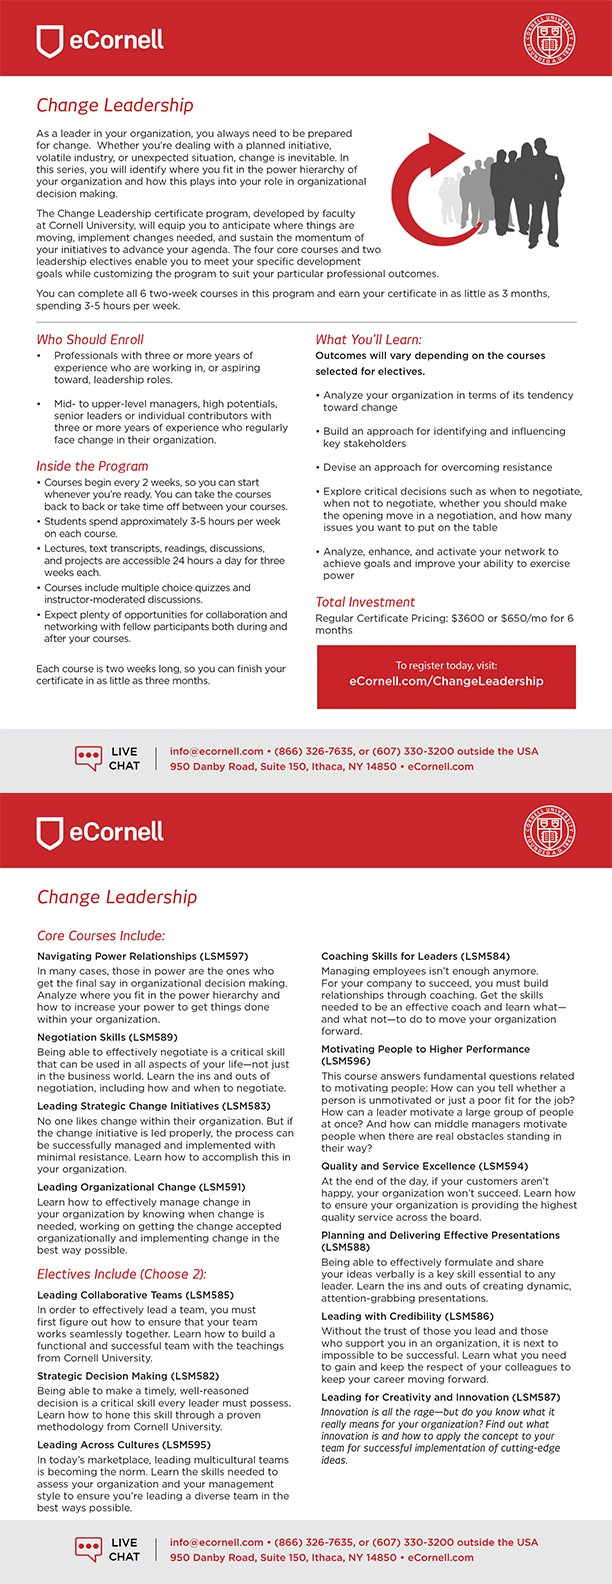 Change Leadership Information Sheet